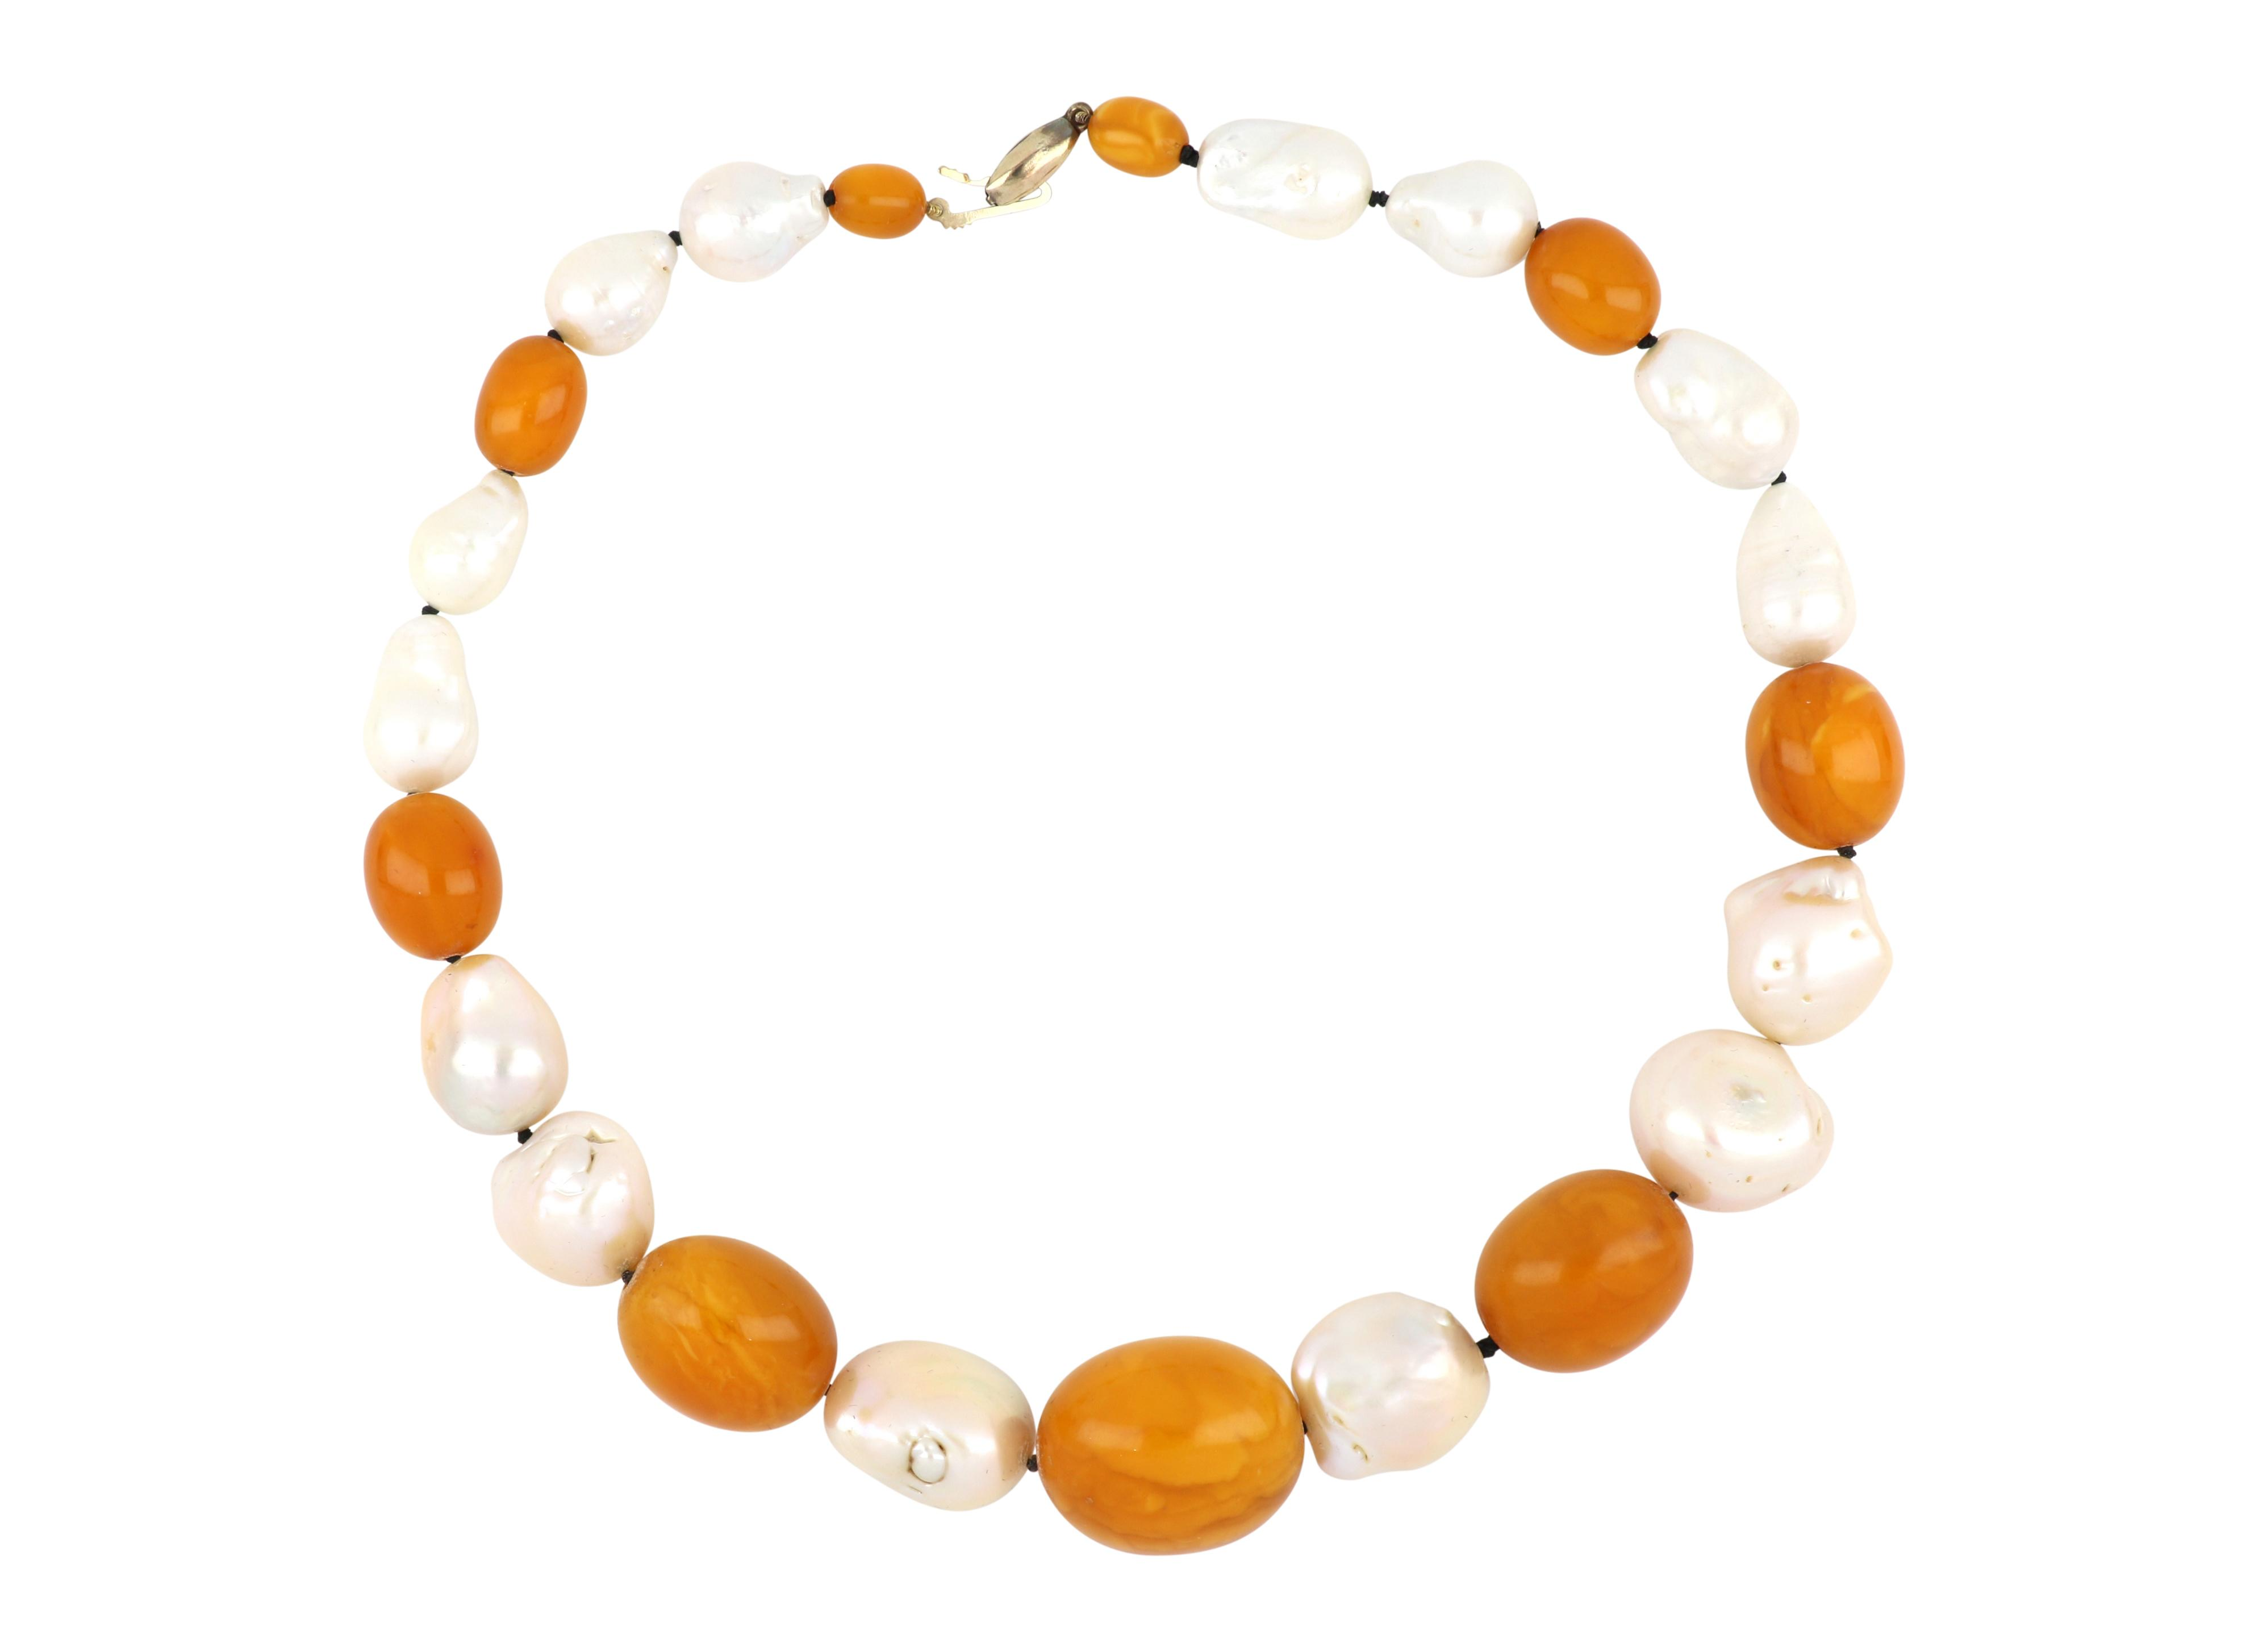 Antique Baltic Butterscotch amber and pearl necklace, Beads graduate from 25mm to 5mm measured across the beads, Necklace 45 cms long, Weight 93.00 grams